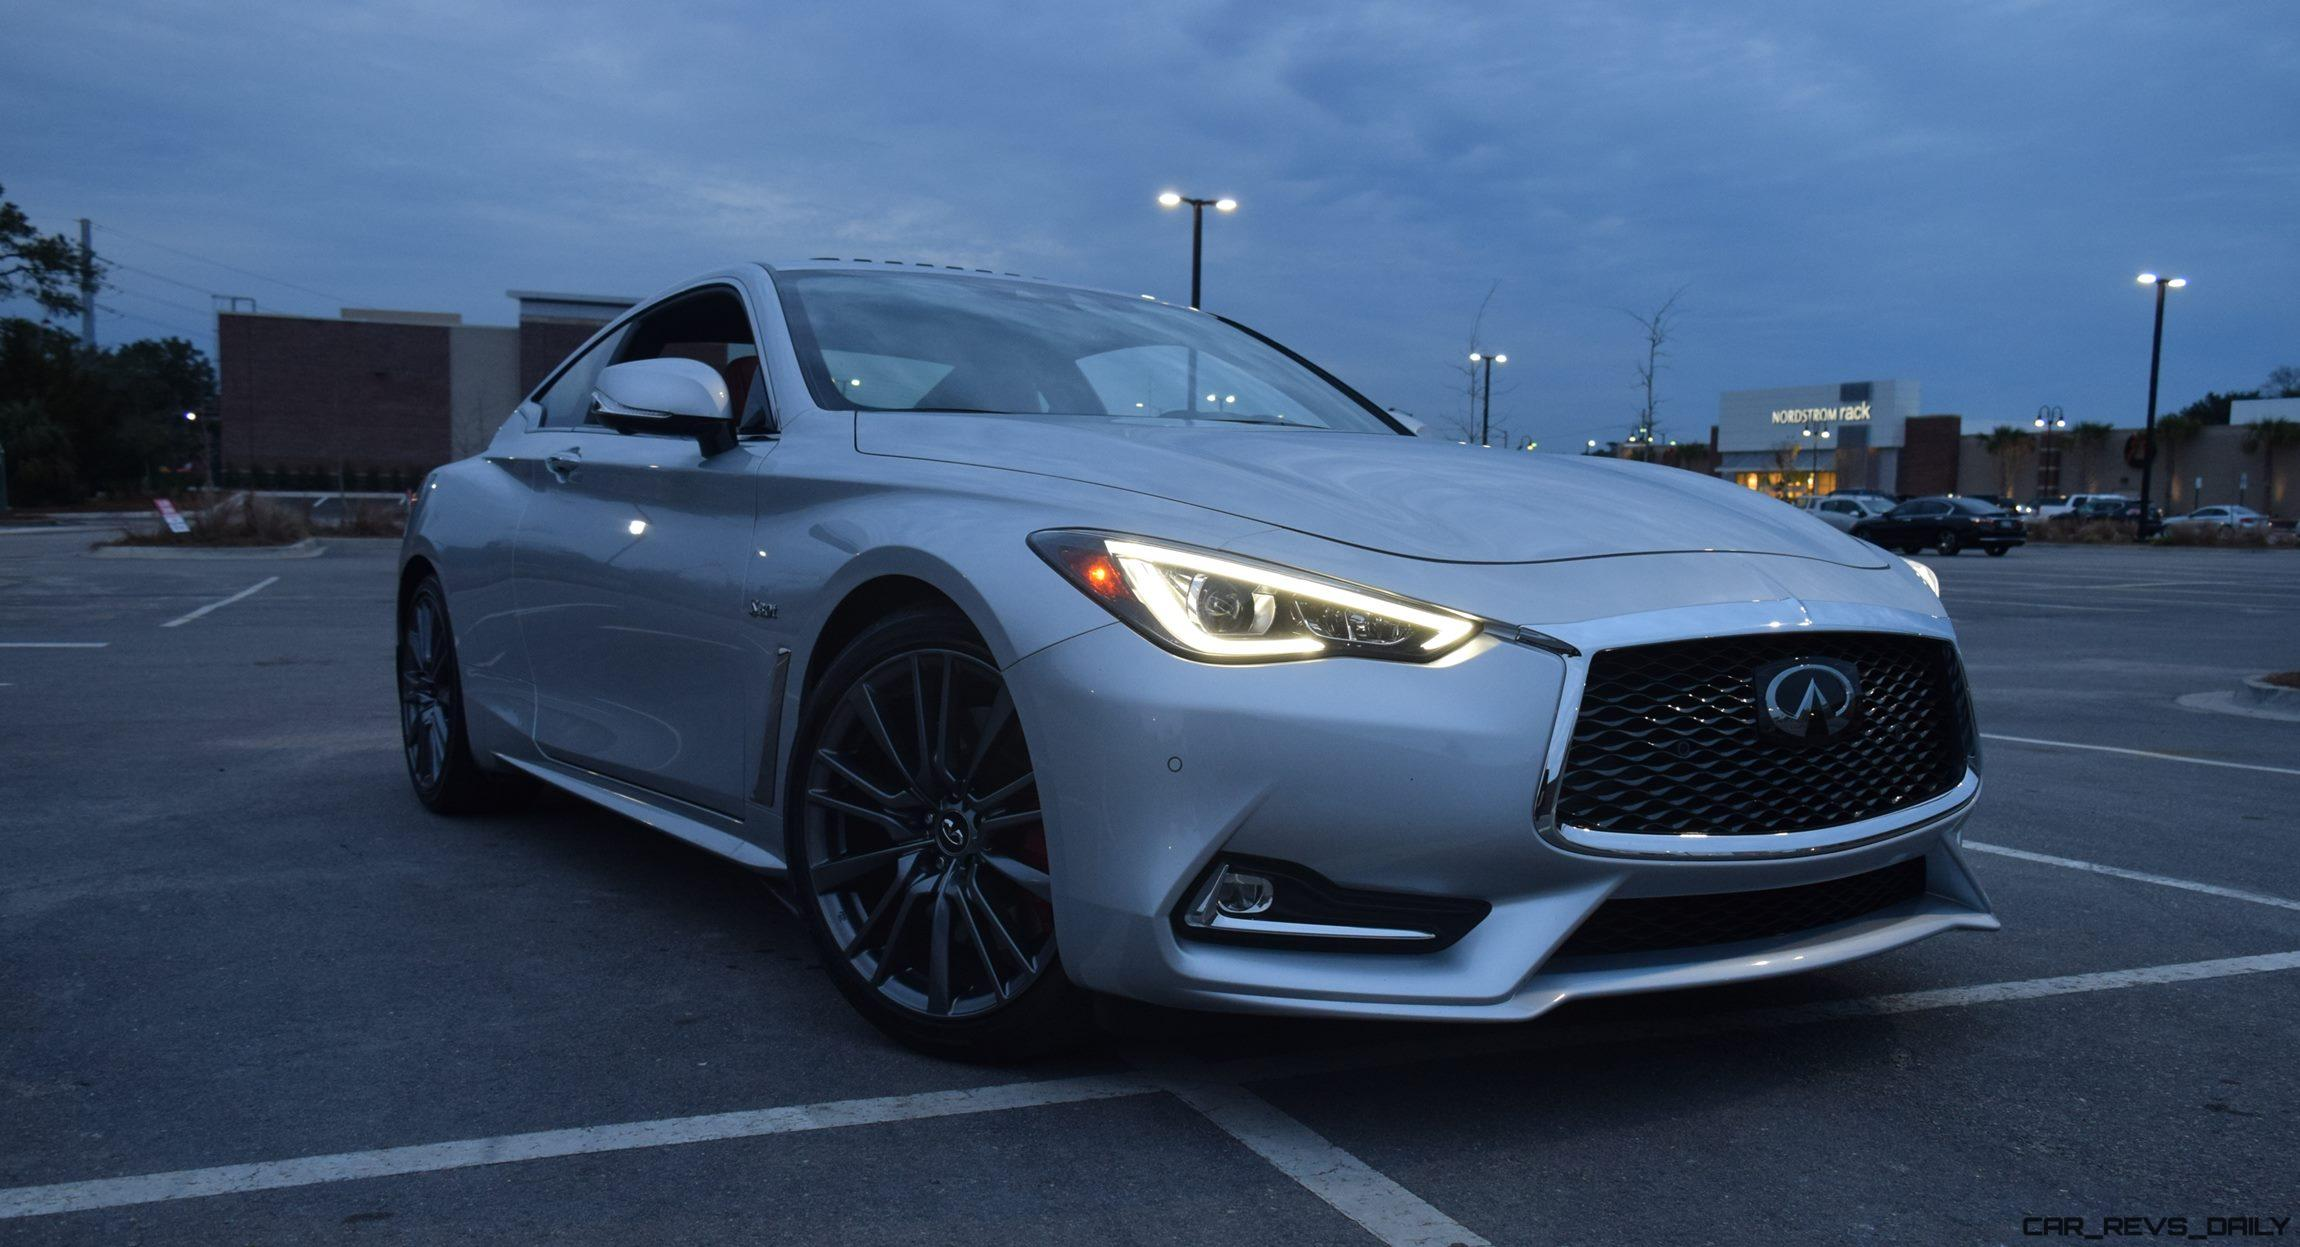 2017 Infiniti Q60 Red Sport 400 Hd Road Test Review